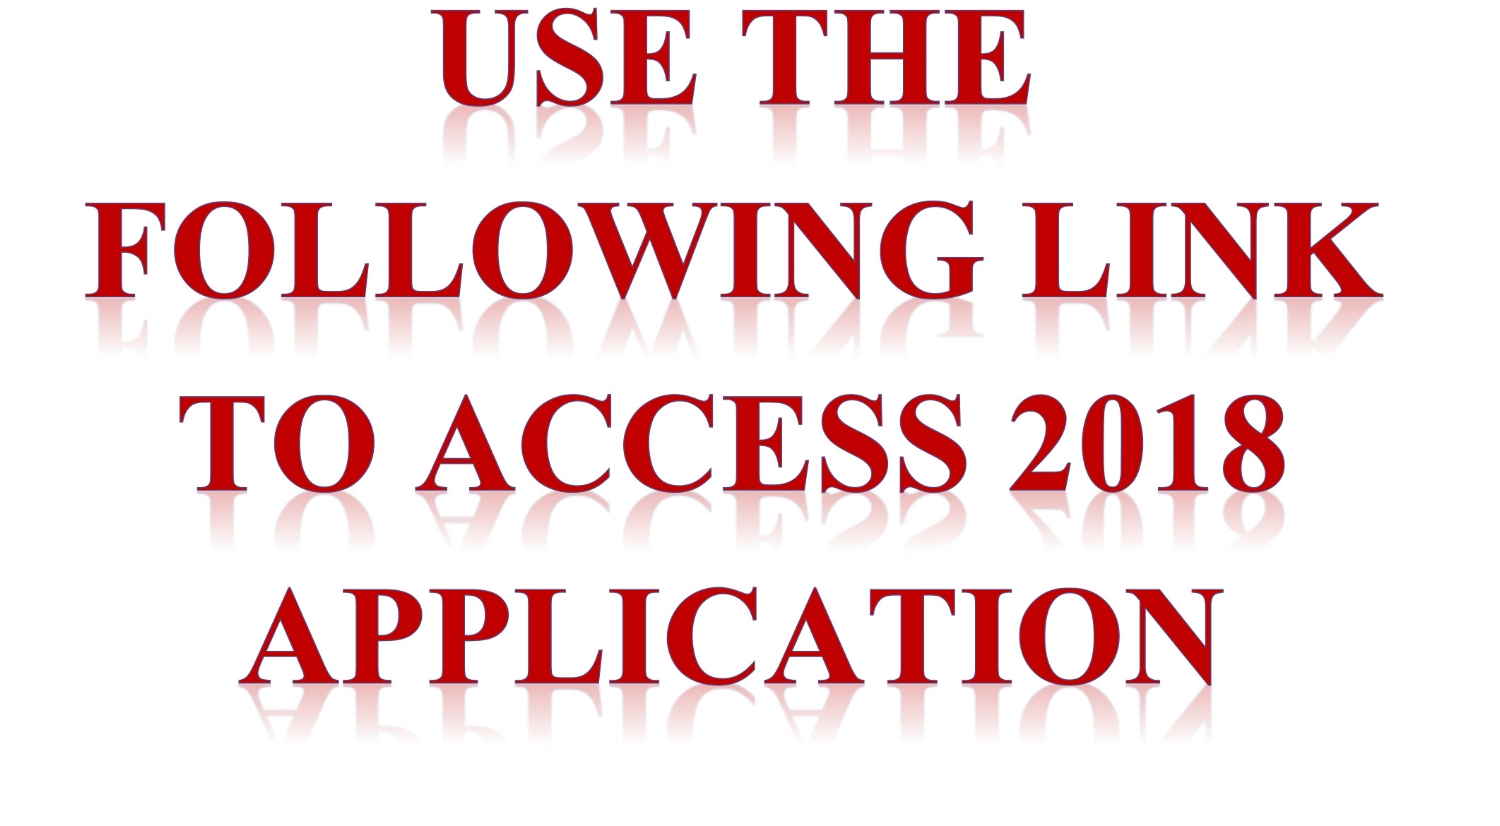 Use the following link to access 2018 application.jpg